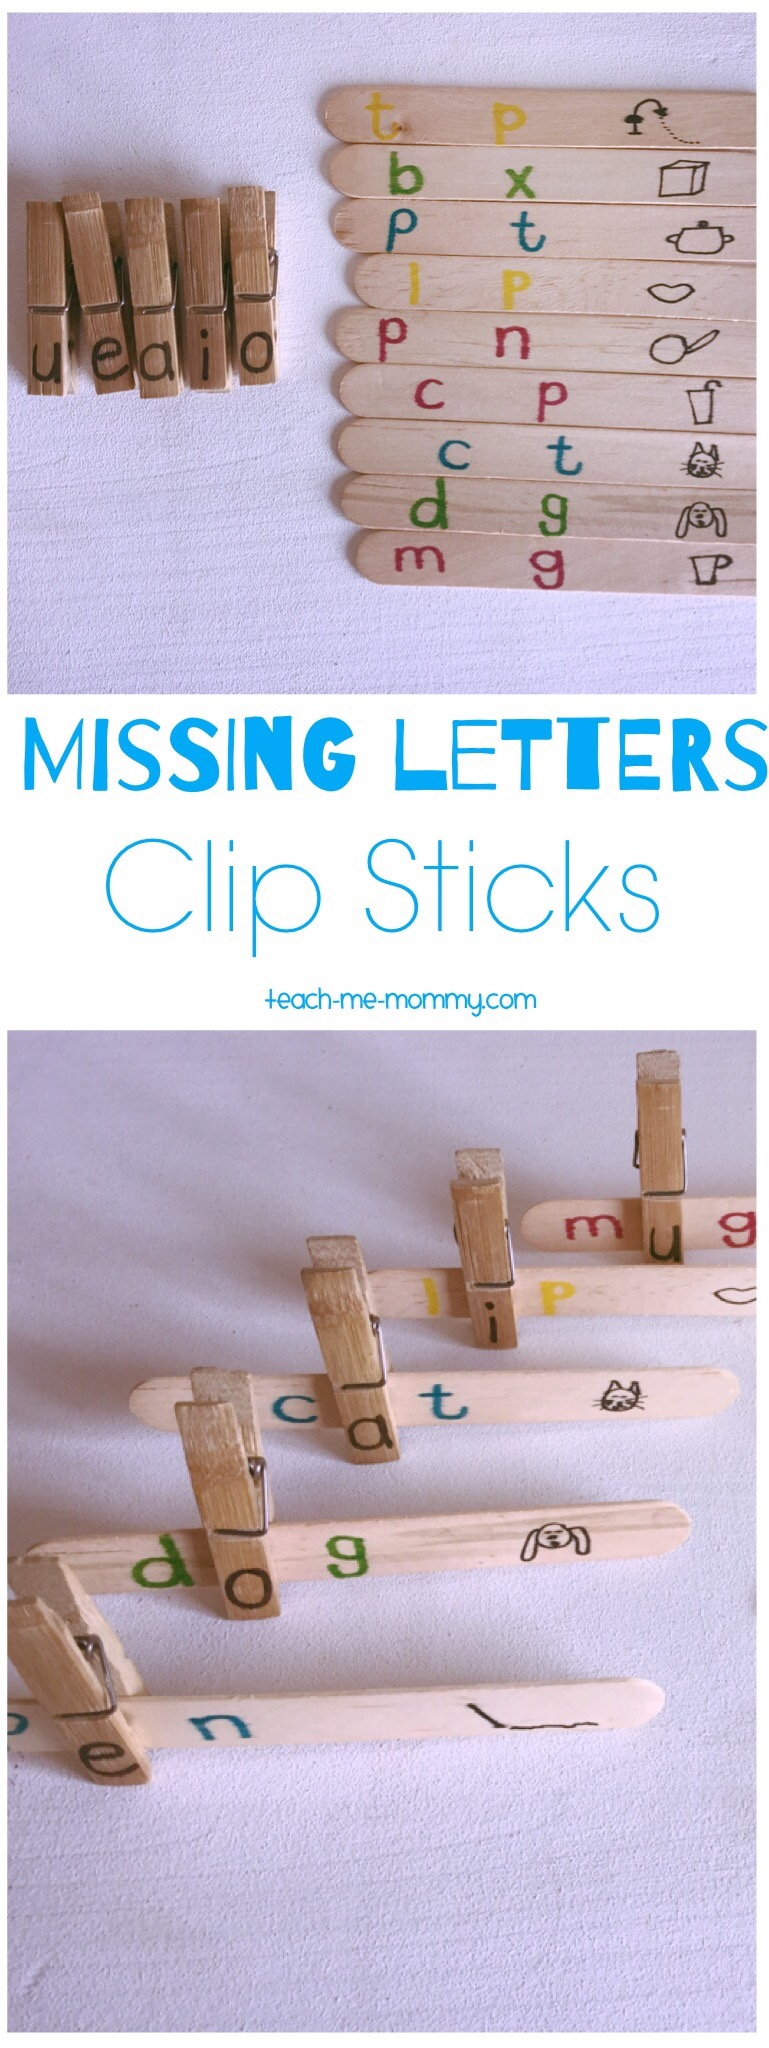 Missing letter clip sticks